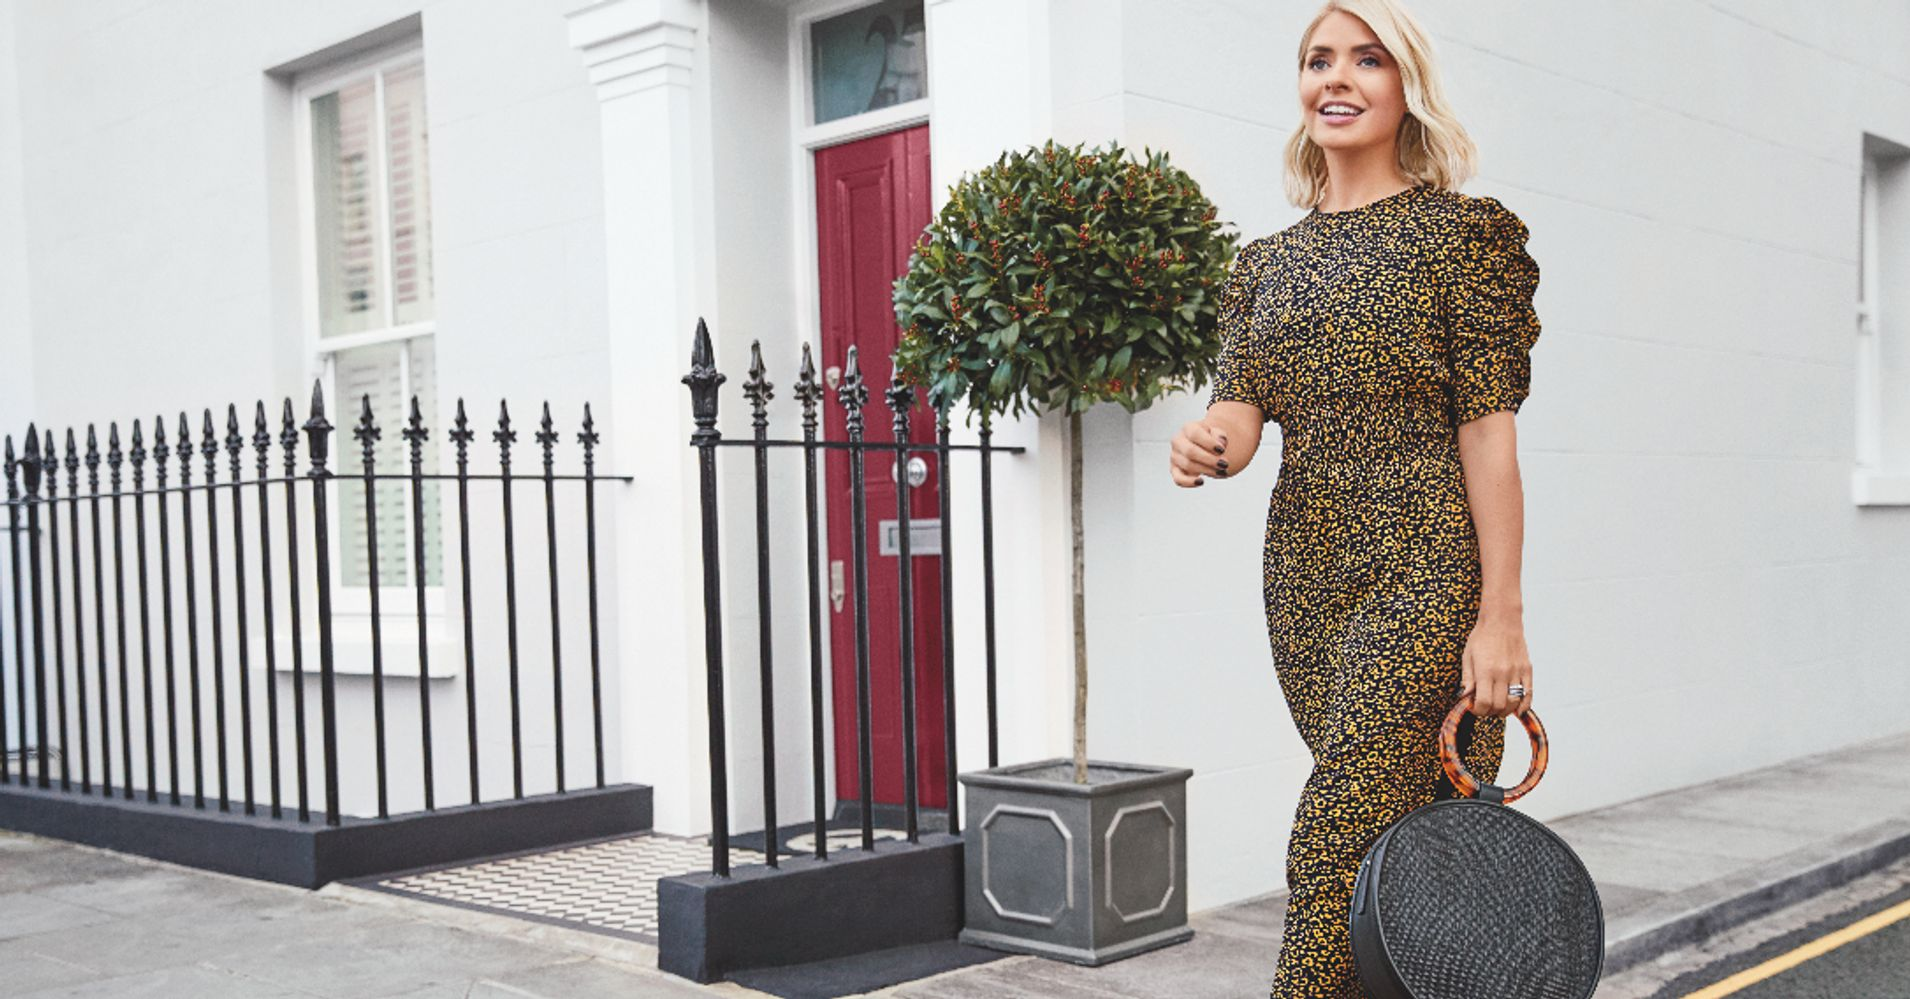 a5fbf05e5712 Holly Willoughby's New M&S Collection Is Now Available To Buy – Here's What  We Love